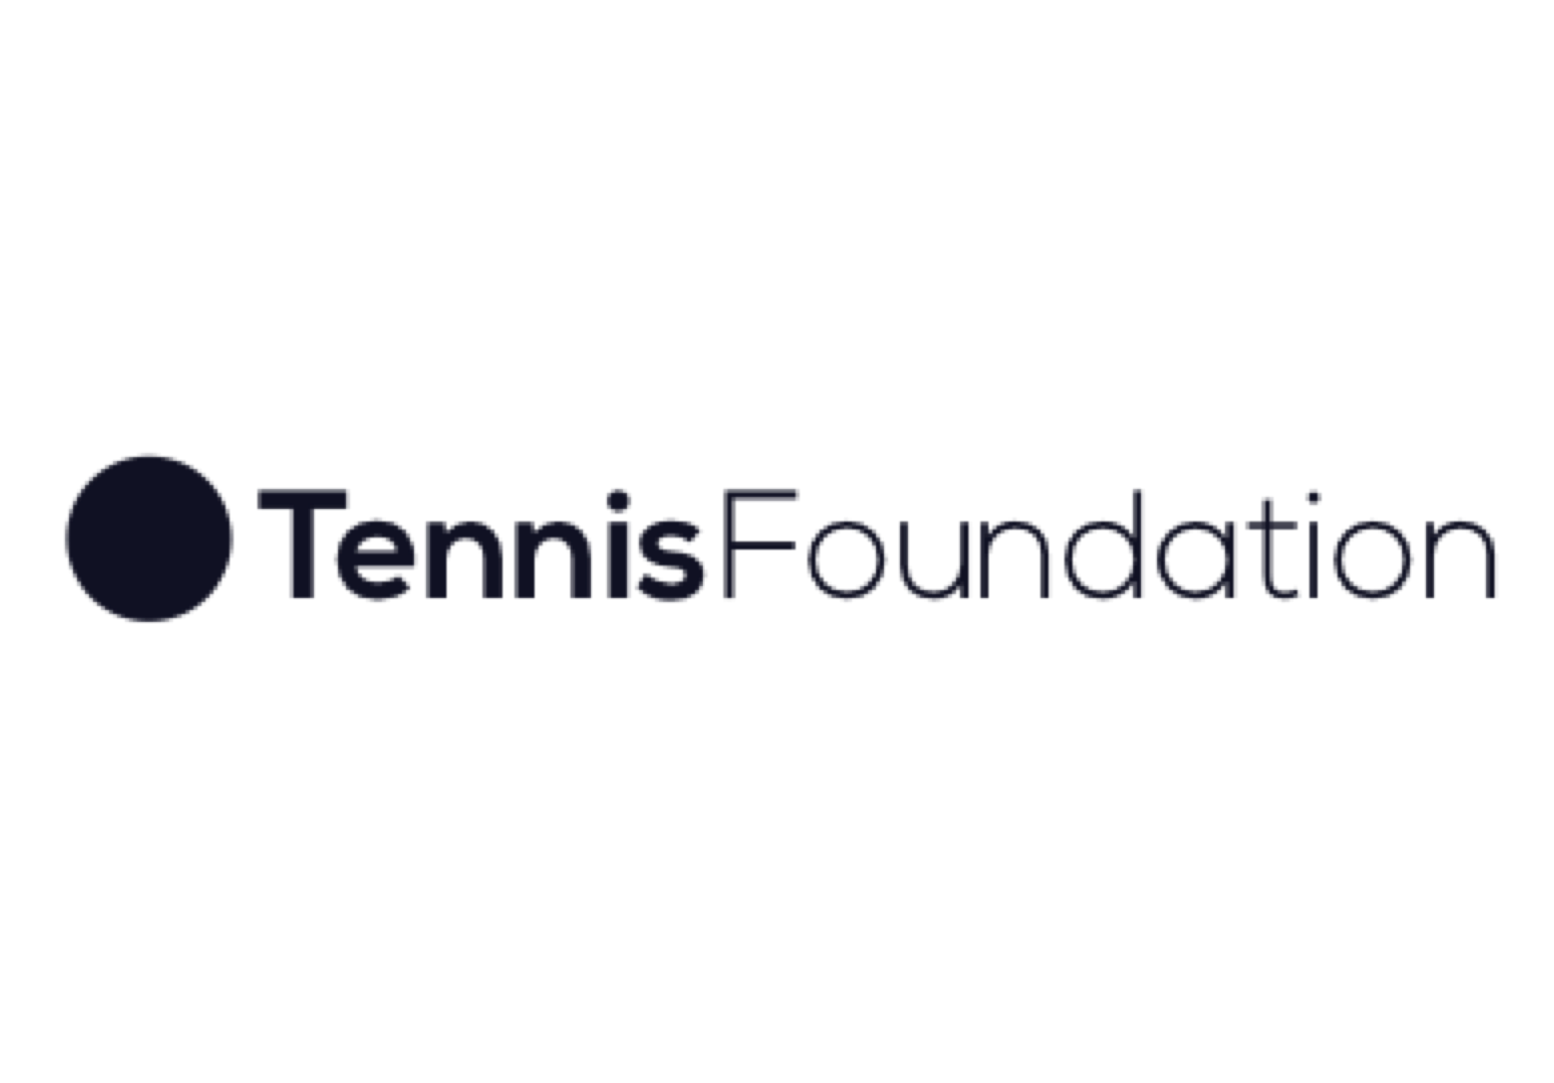 Tennis Foundation